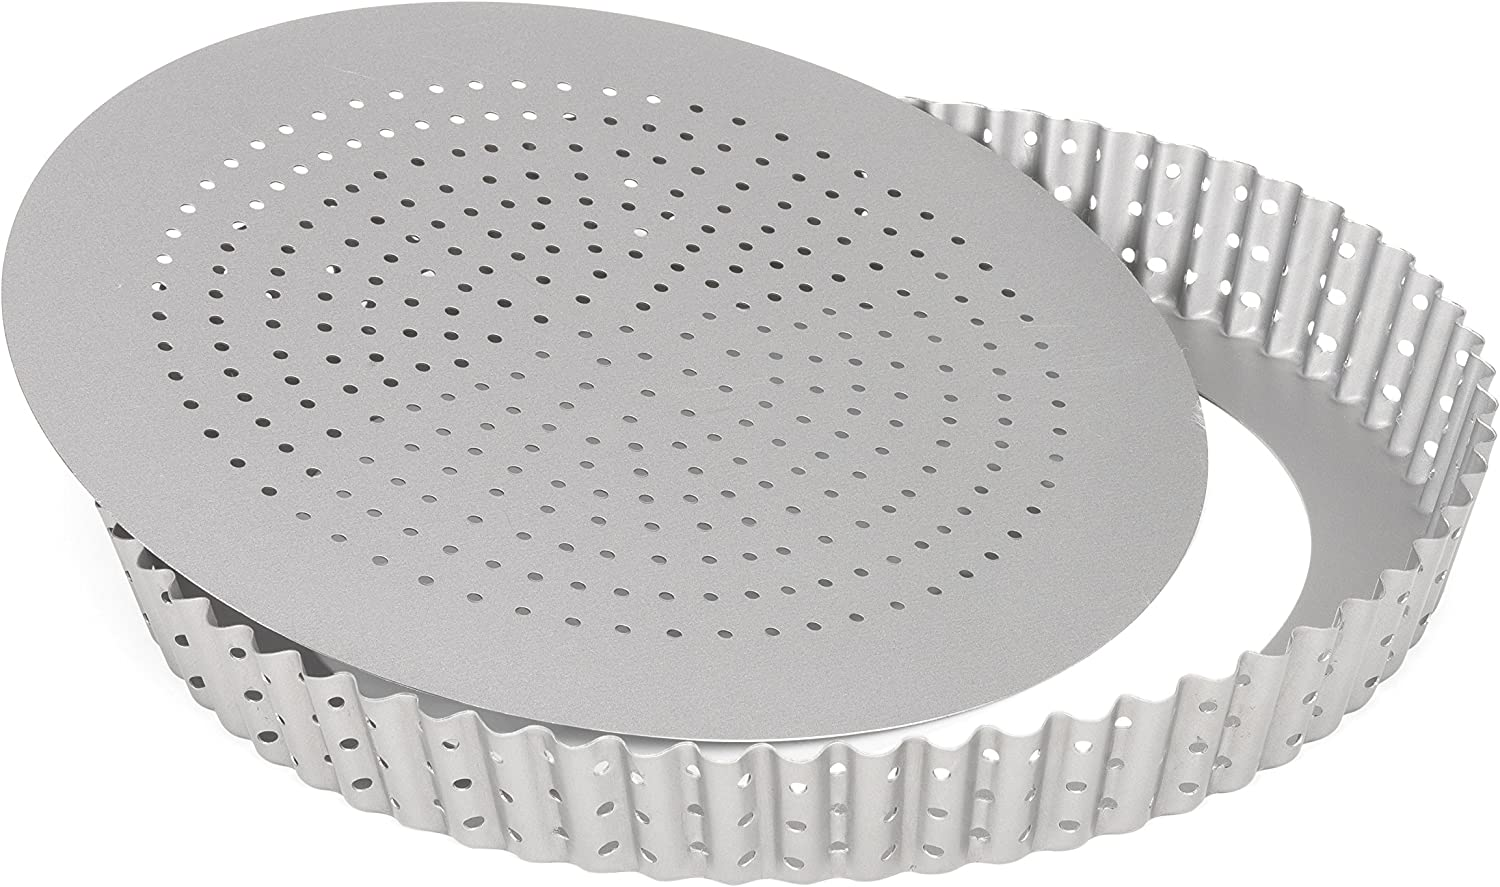 """Patisse Round Quiche Pan with Glass Bottom 9-1//2/"""" or 24 cm in Diameter Nonstick"""